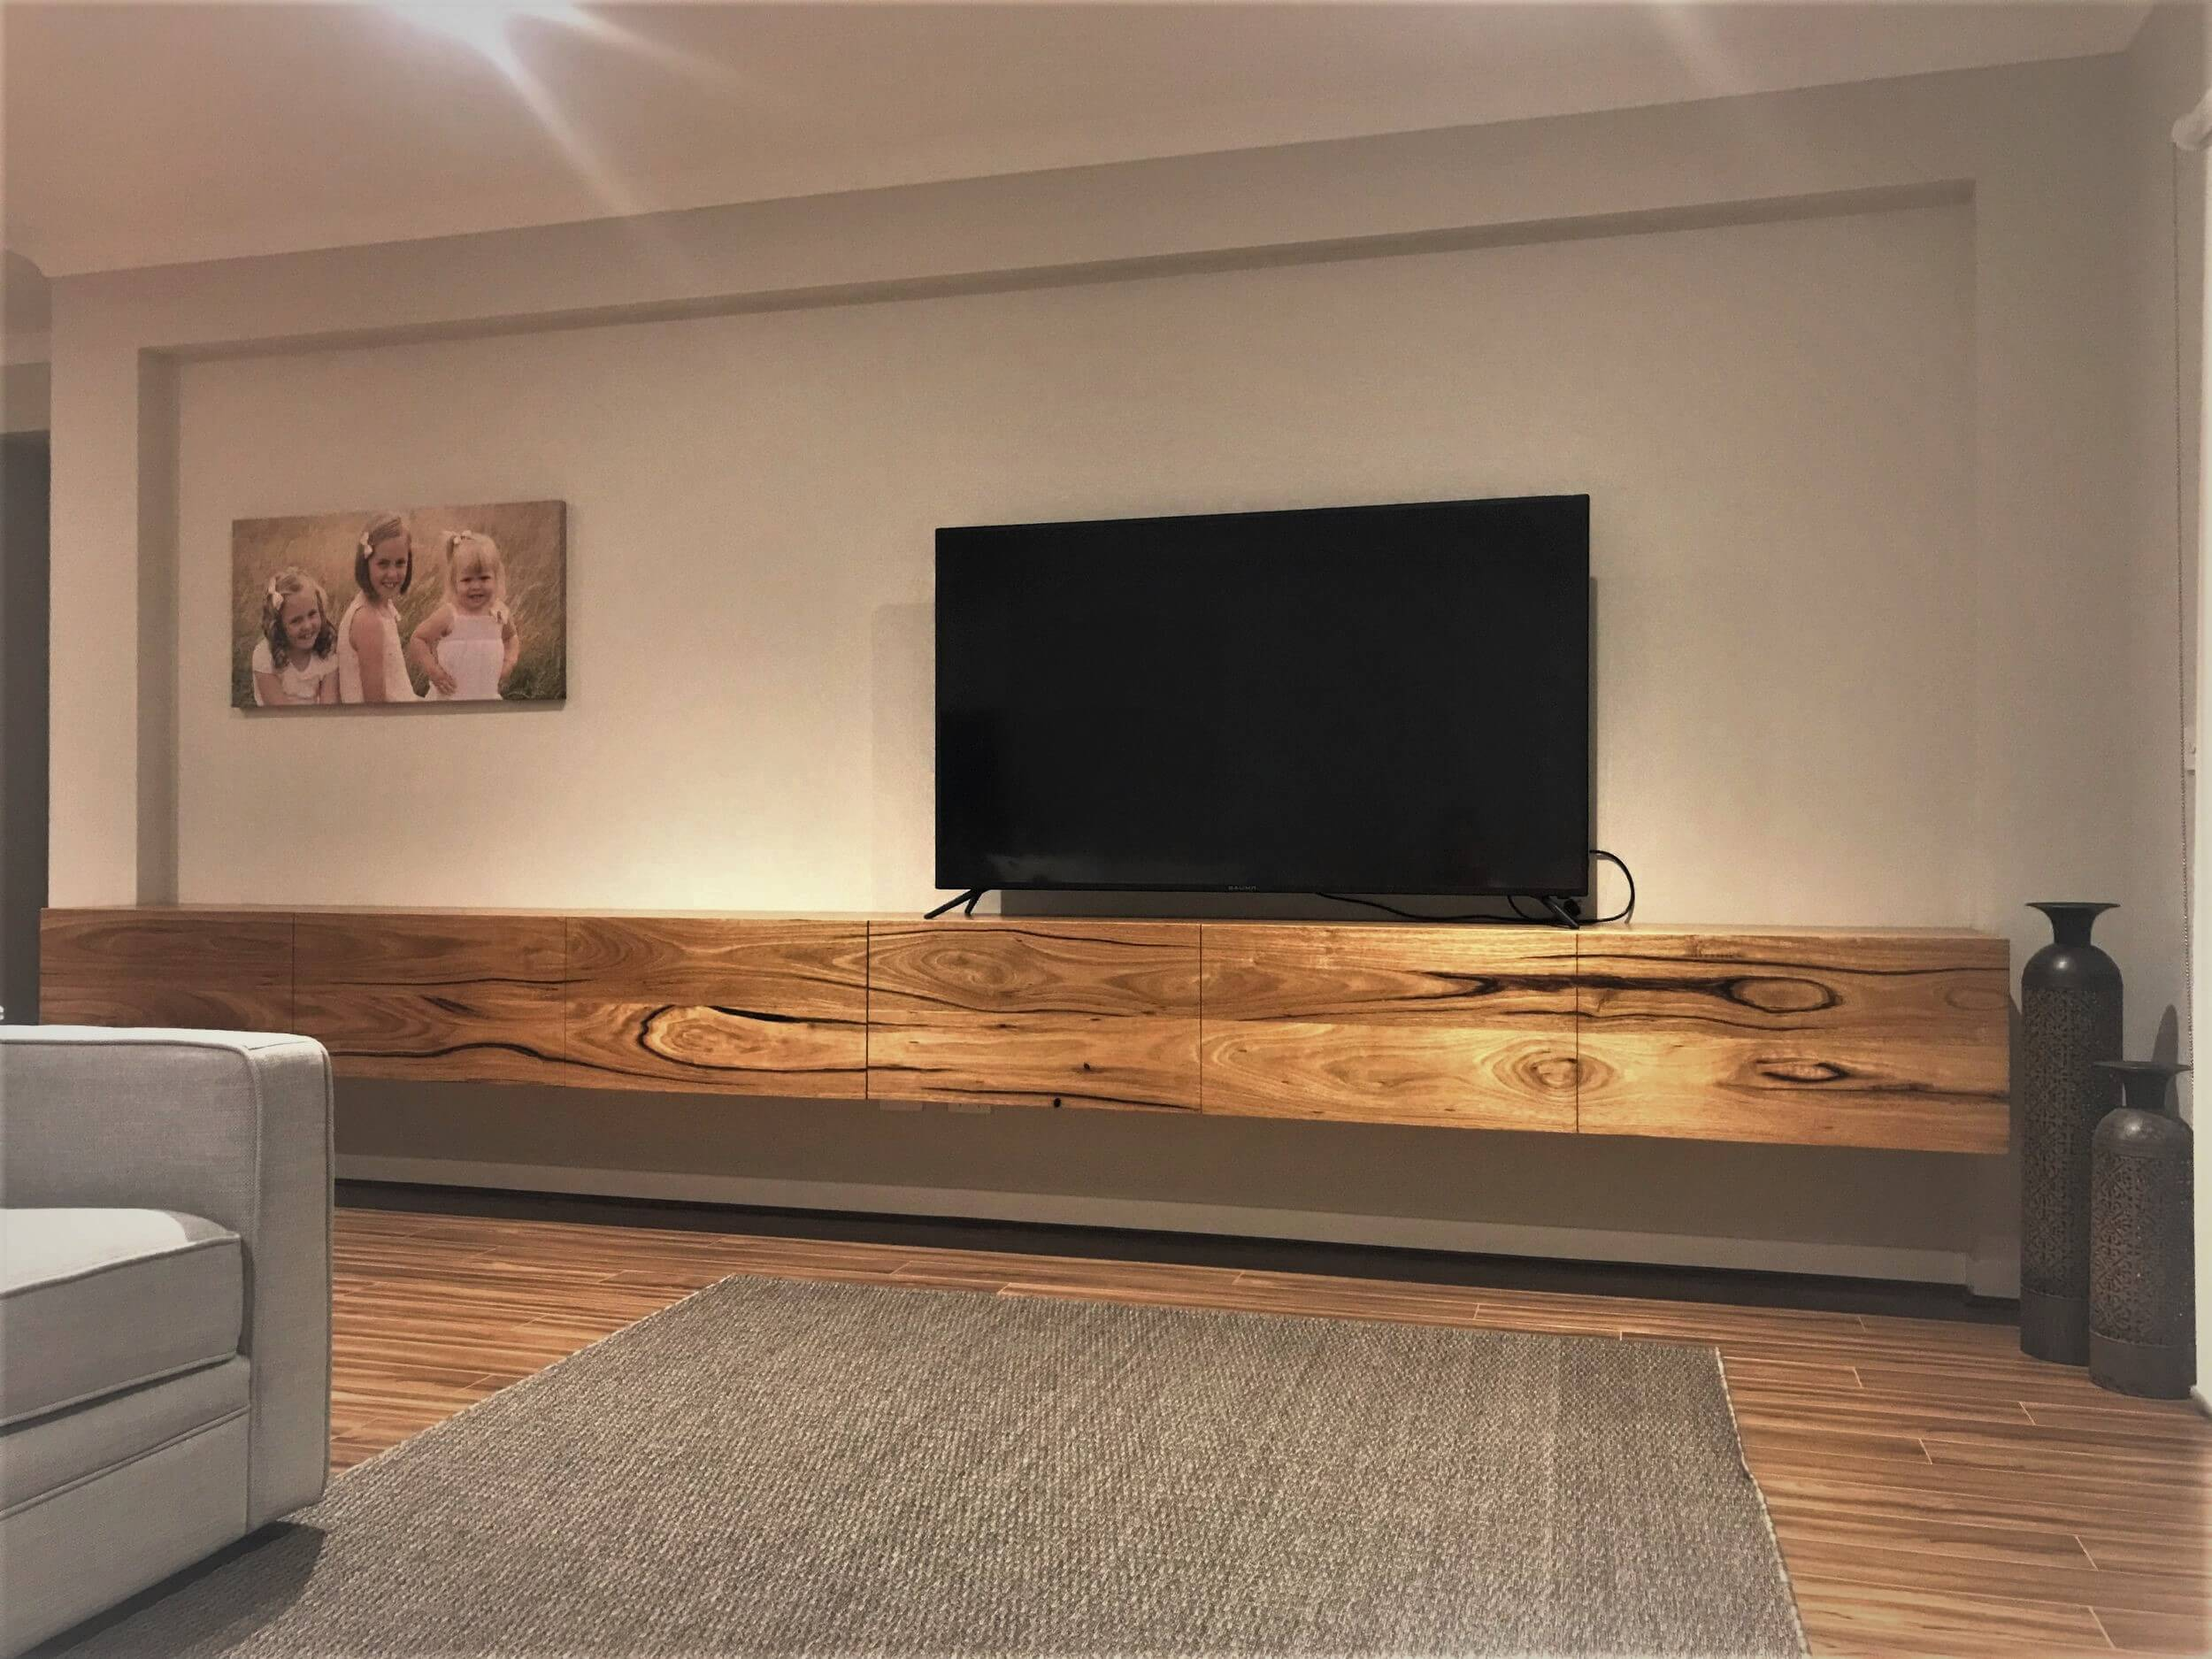 Modern TV on a wooden cabinet in the living room